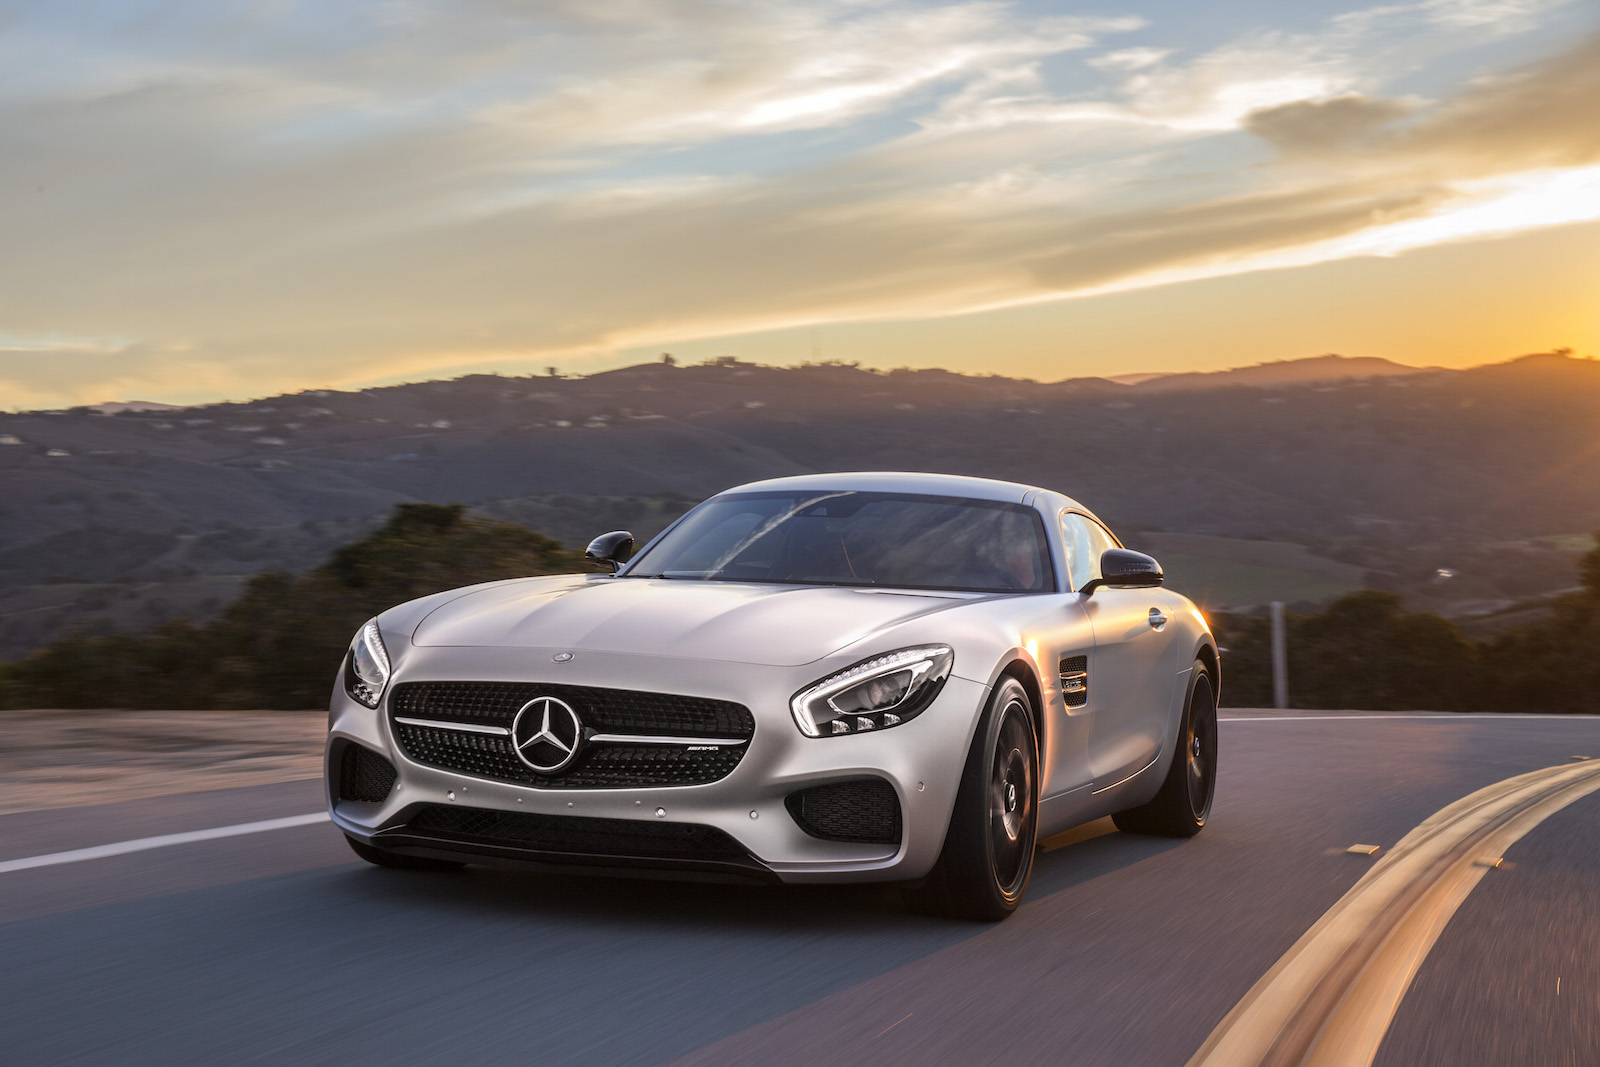 2016 mercedes benz amg gt review ratings specs prices for Mercedes benz amg gt coupe price